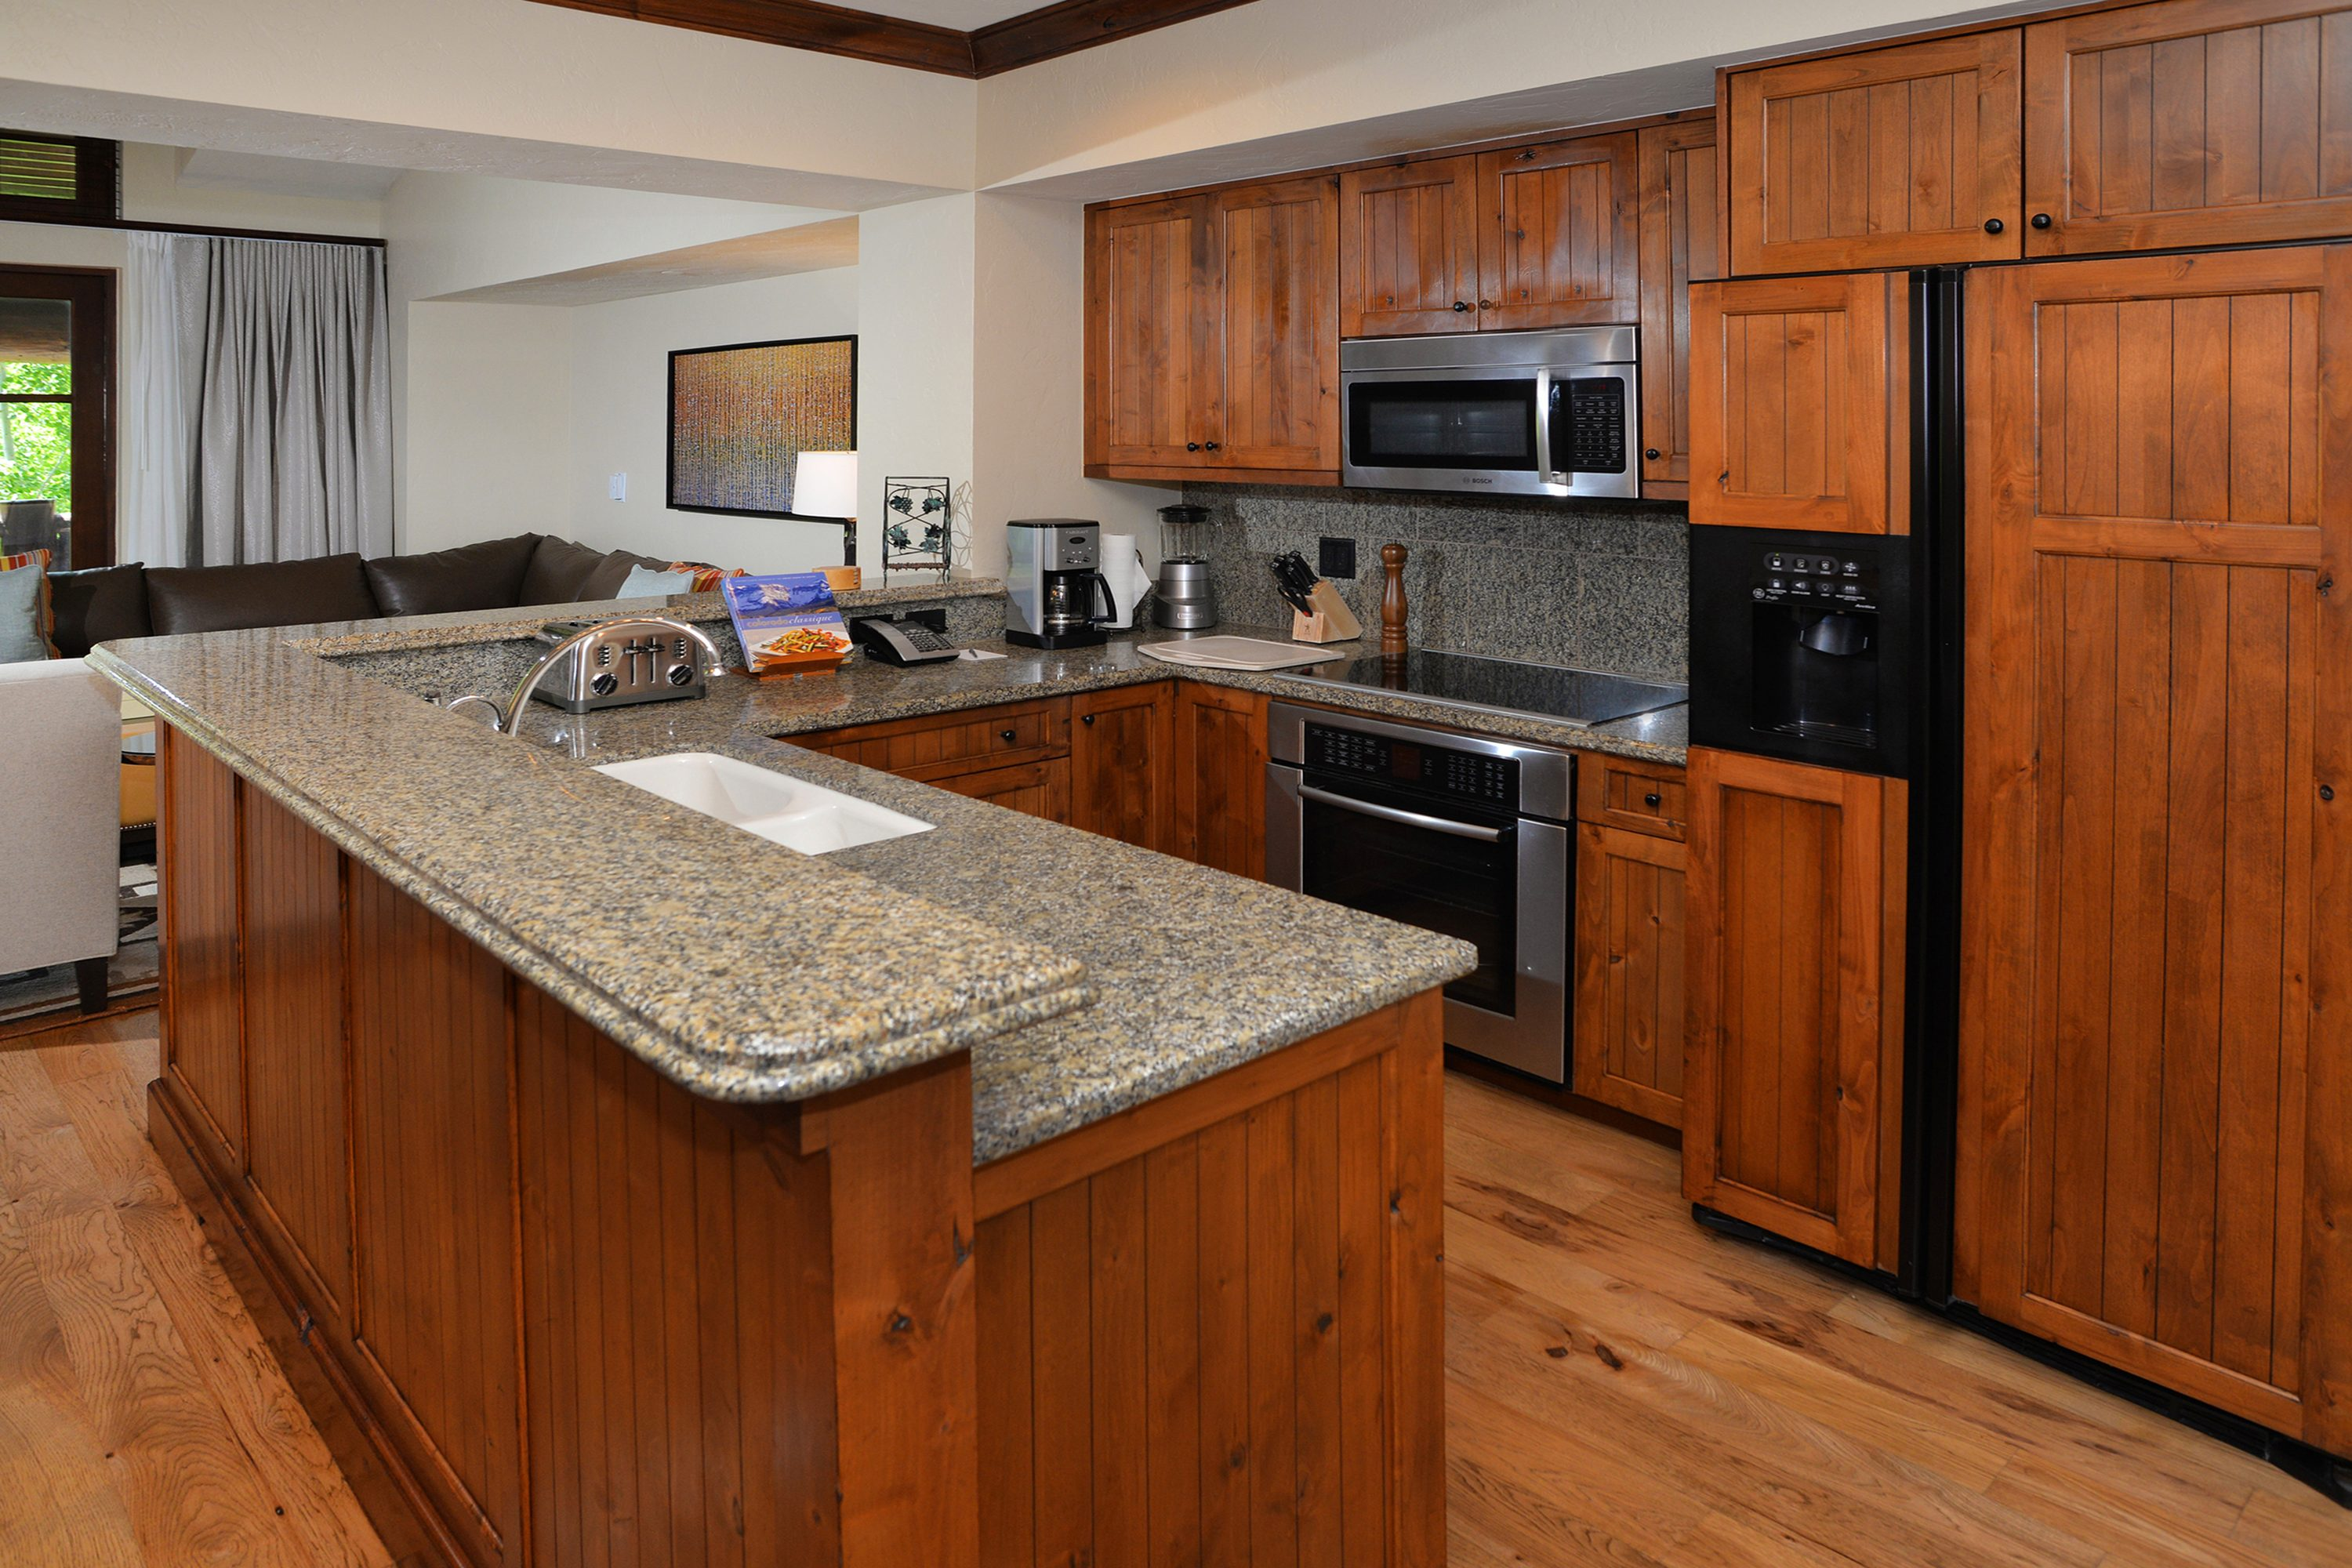 Timbers Bachelor Gulch 3511 - 3 bed Mountain Rental